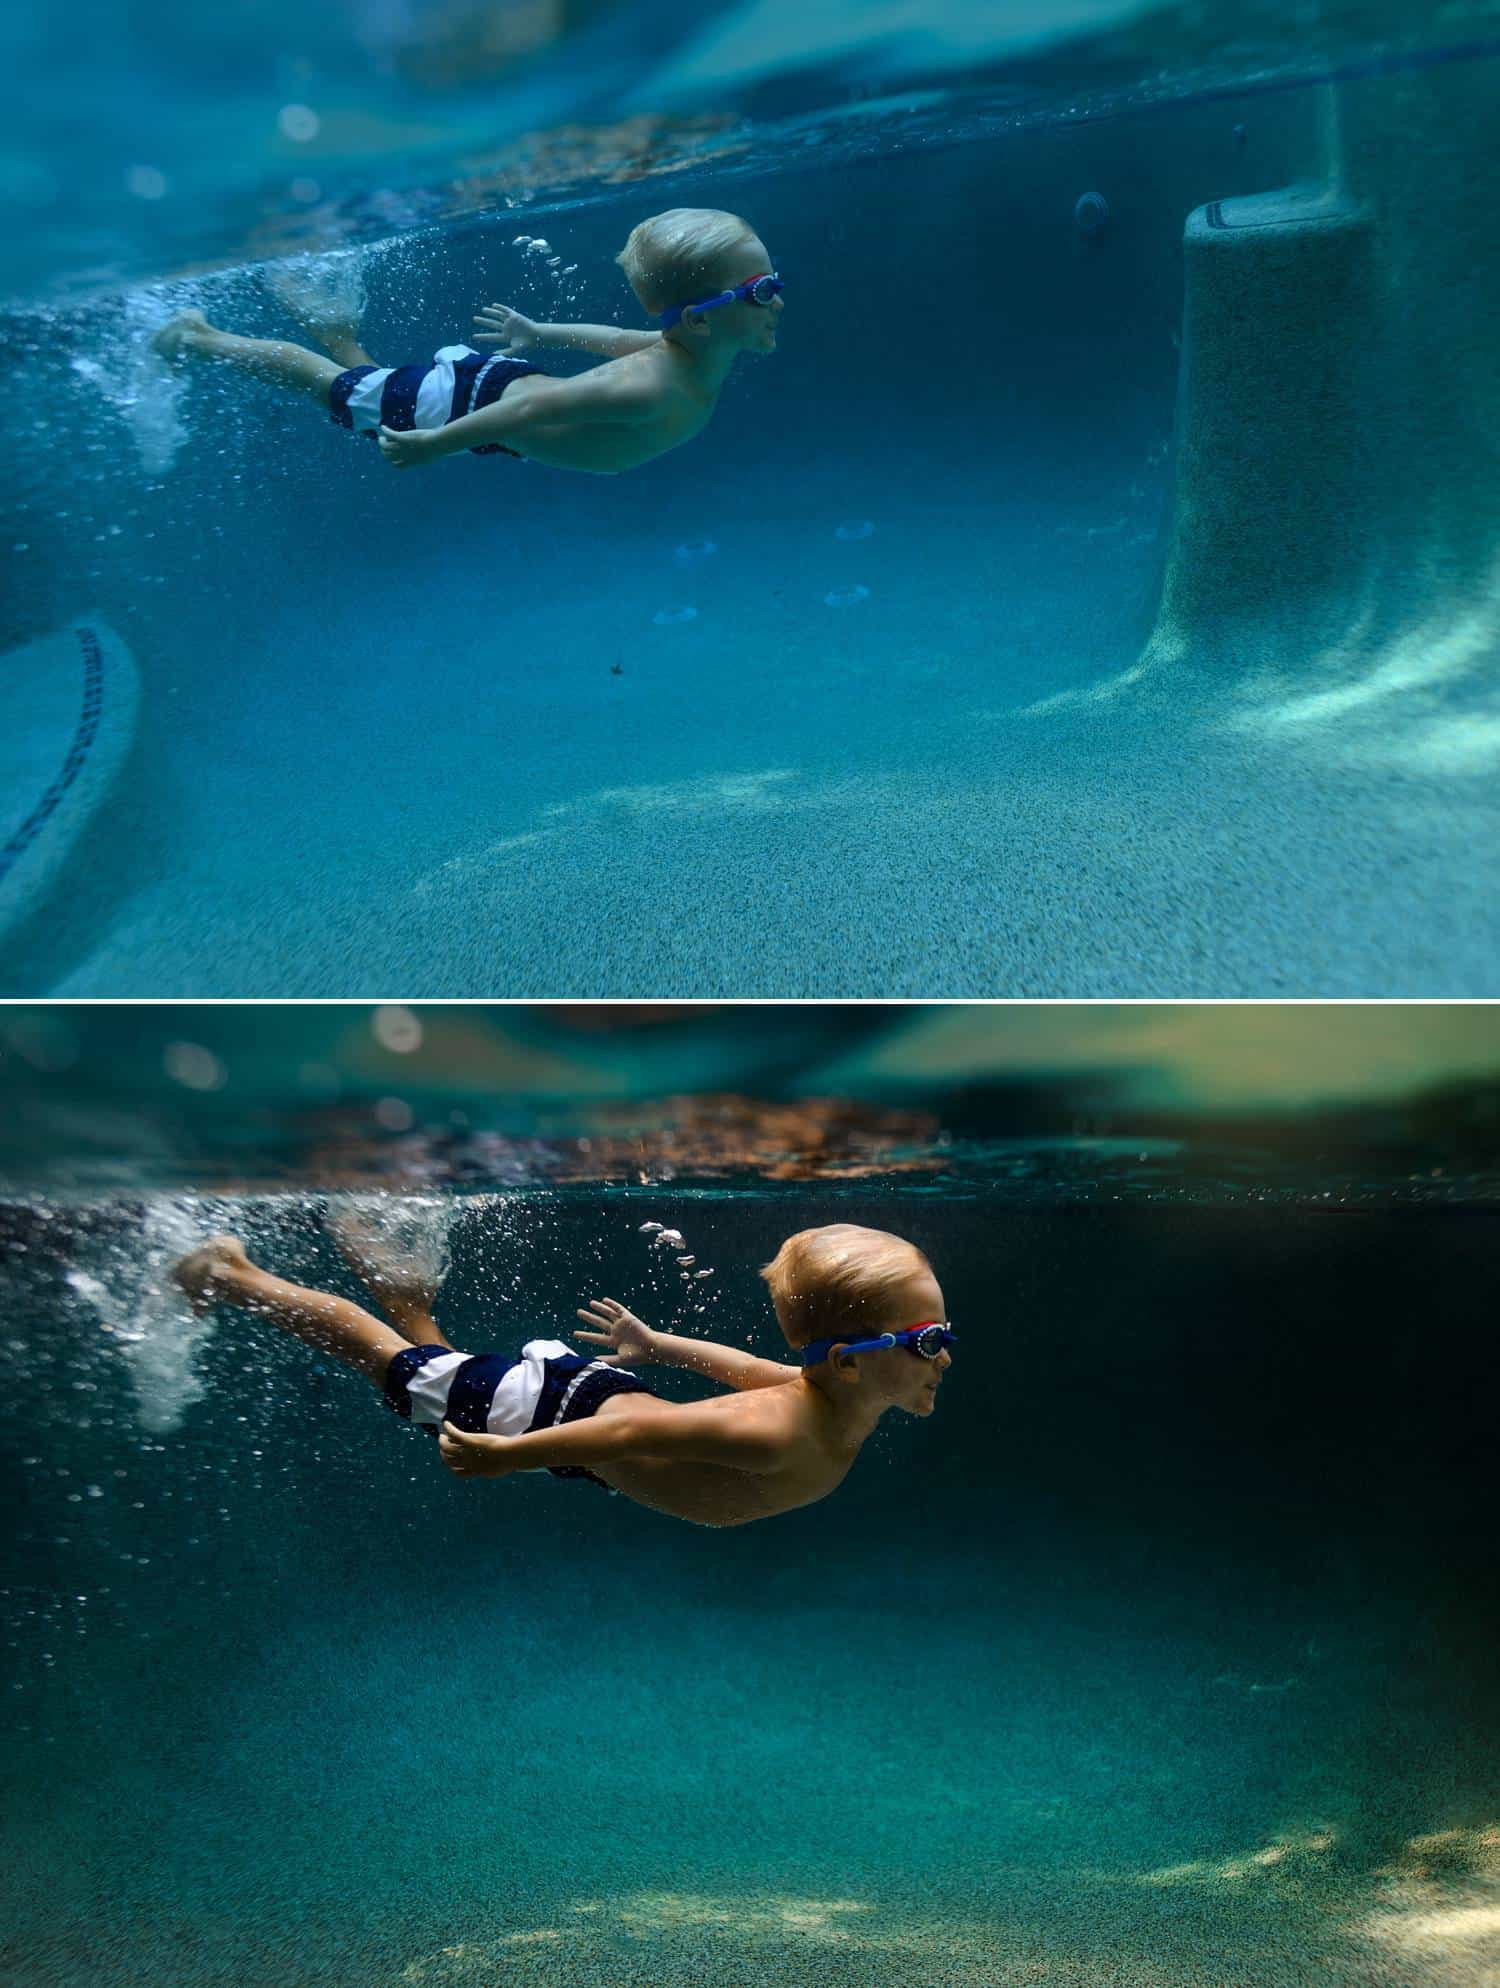 Before and after photos show the post-production process of one of Elizabeth Blank's underwater photographs. A child wearing striped swim trunks and goggles is swimming underwater with his arms stretched behind him.